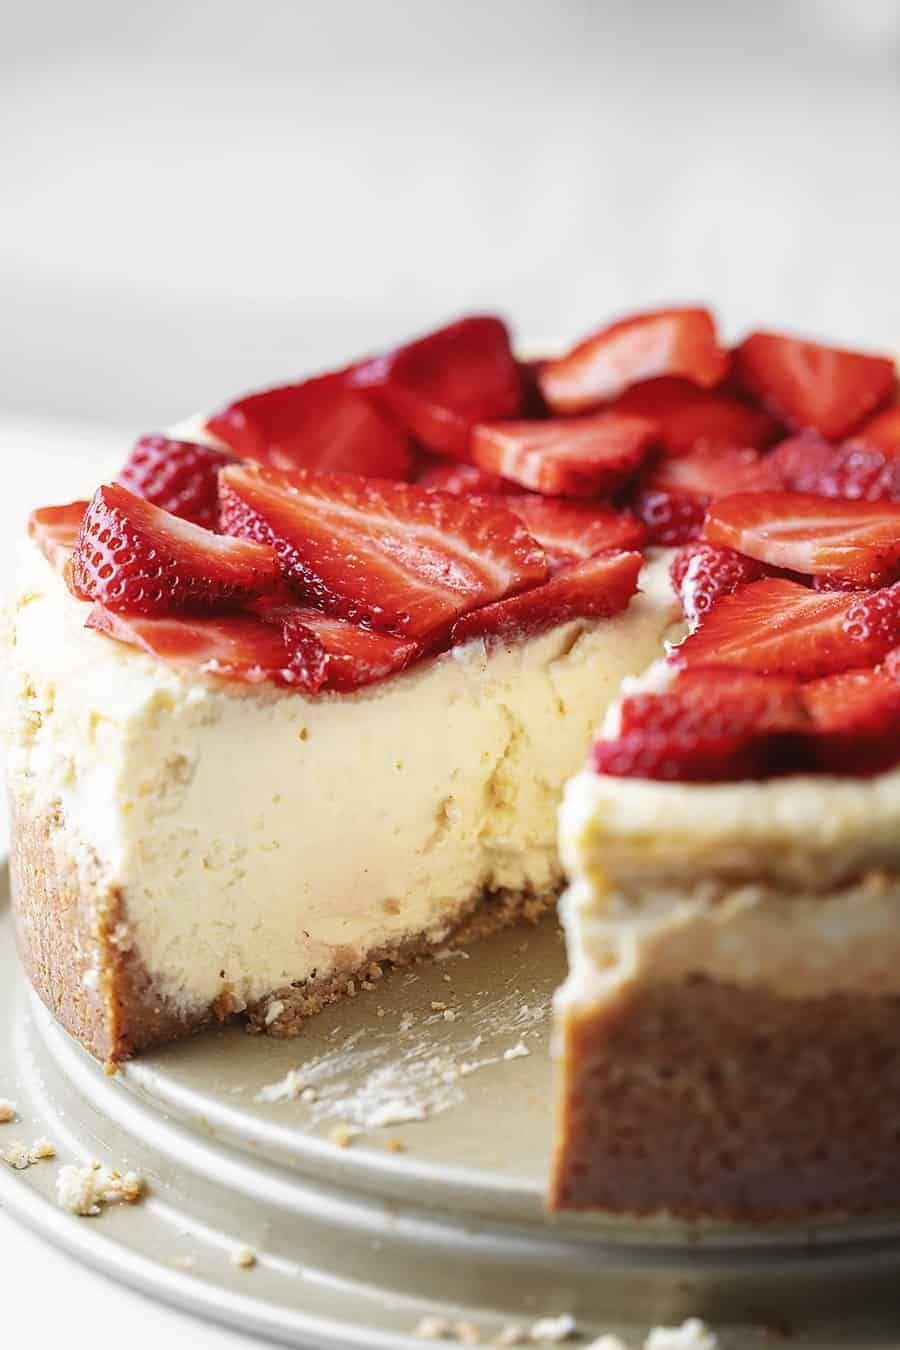 """<p>This recipe's a bit on the decadent side, but nothing tastes better than a slice of classic cheesecake. Just watch your portions!</p><p><a class=""""link rapid-noclick-resp"""" href=""""https://jenniferbanz.com/the-best-keto-cheesecake"""" rel=""""nofollow noopener"""" target=""""_blank"""" data-ylk=""""slk:Get the recipe"""">Get the recipe</a></p><p><em>Per serving: 600 calories, 7 g carbohydrates, 14 g fat, 54 g fat, 2 g fiber</em></p>"""